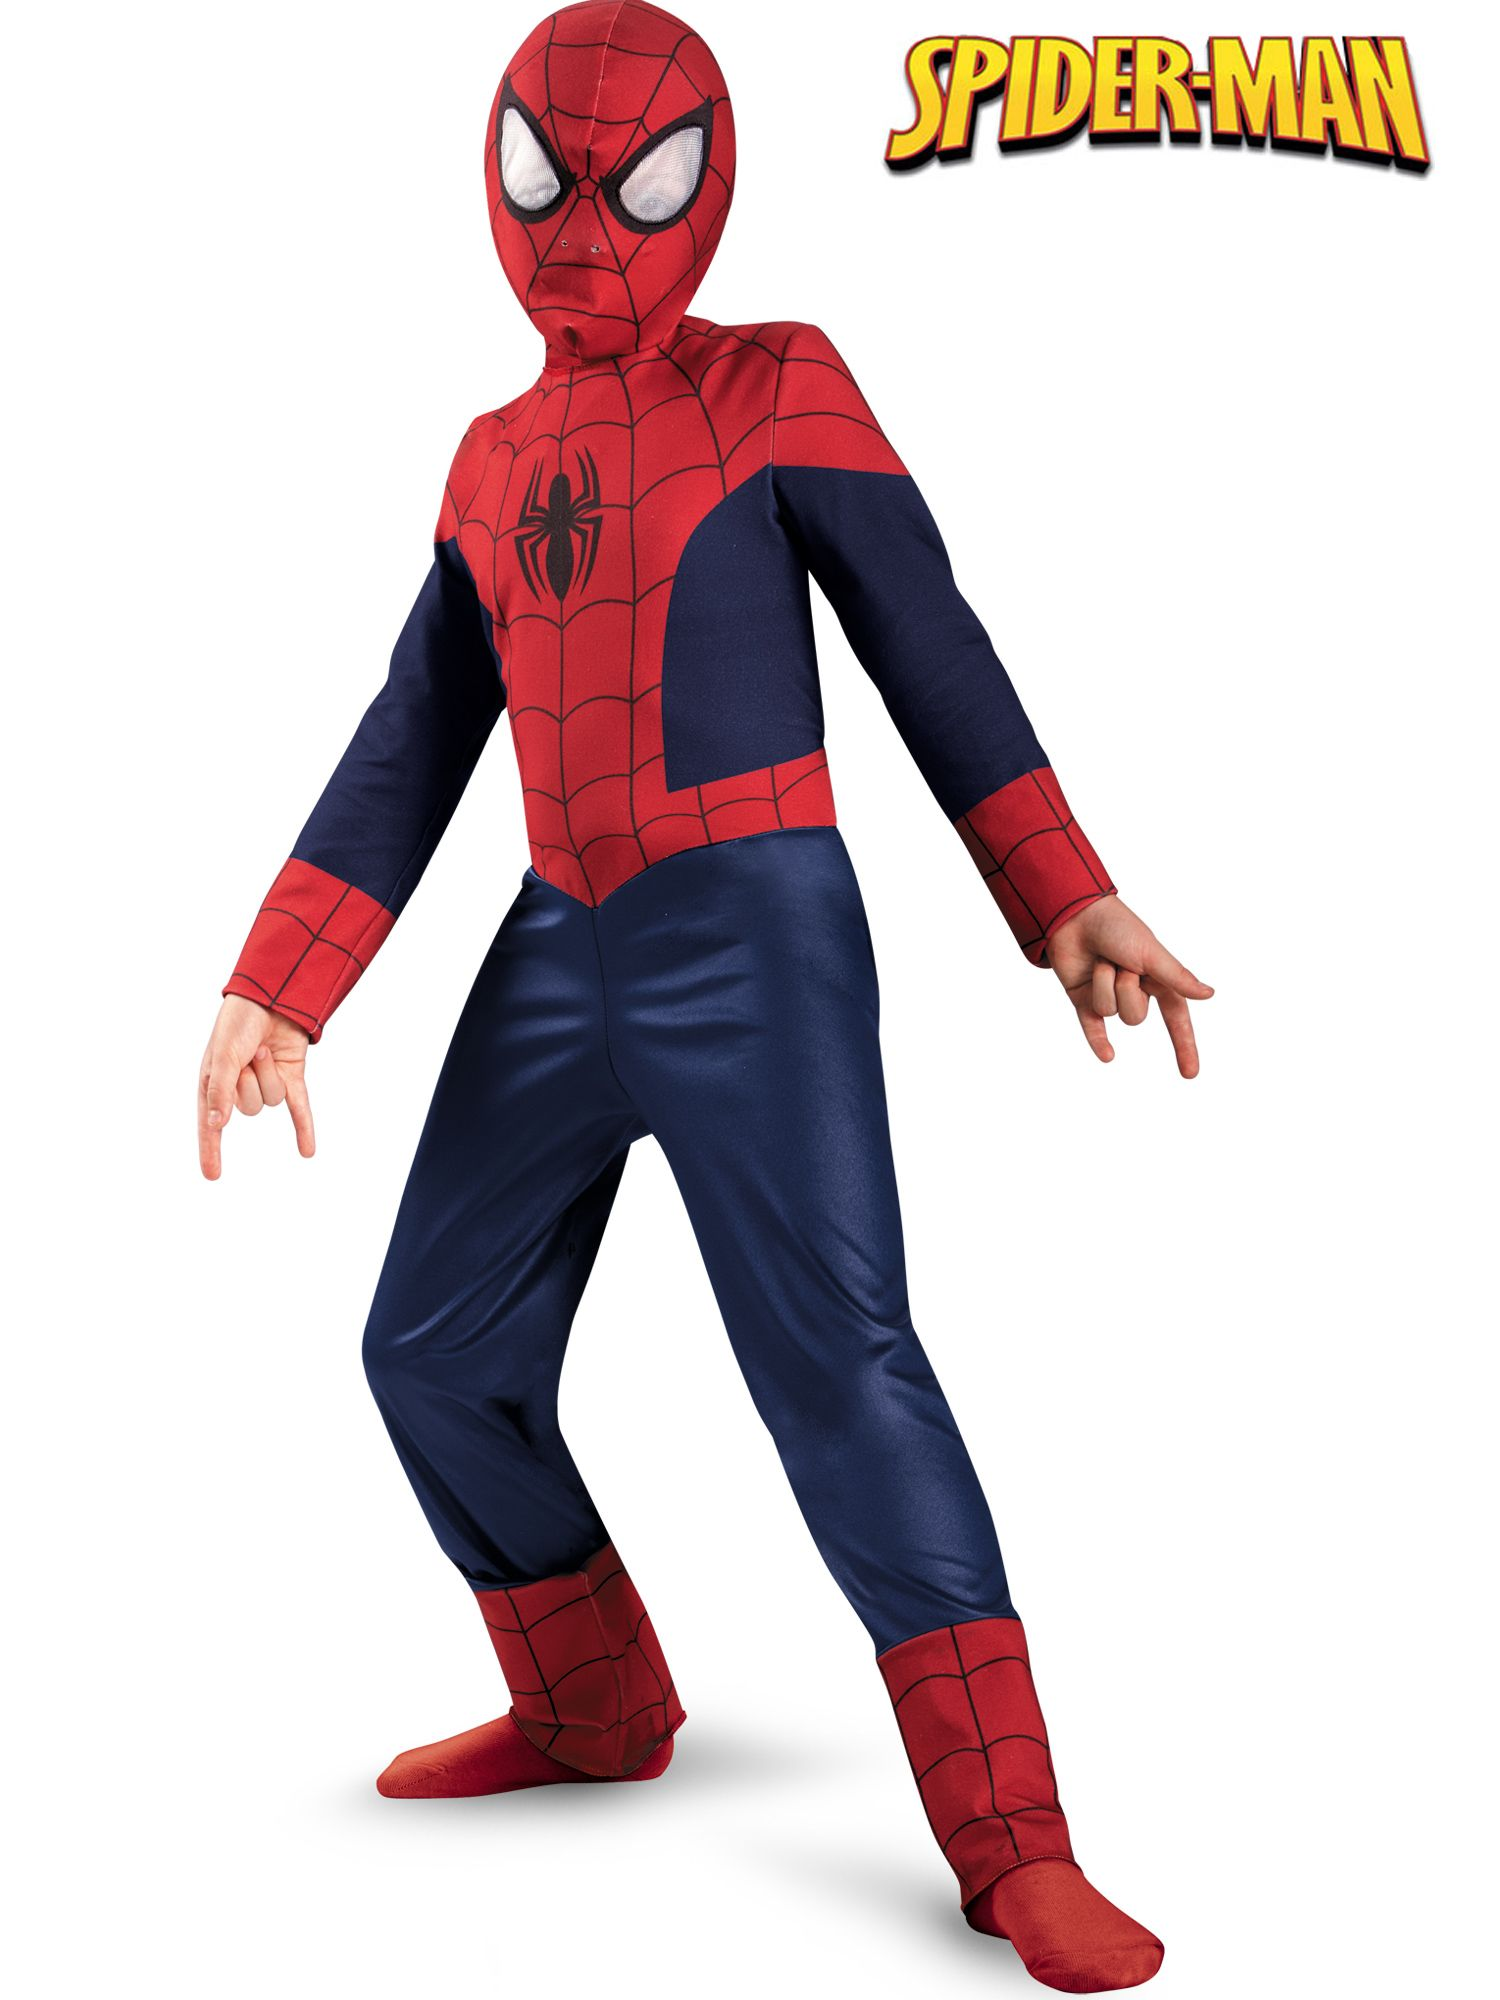 Ultimate Spiderman Classic Costume for Kids DI57710-M